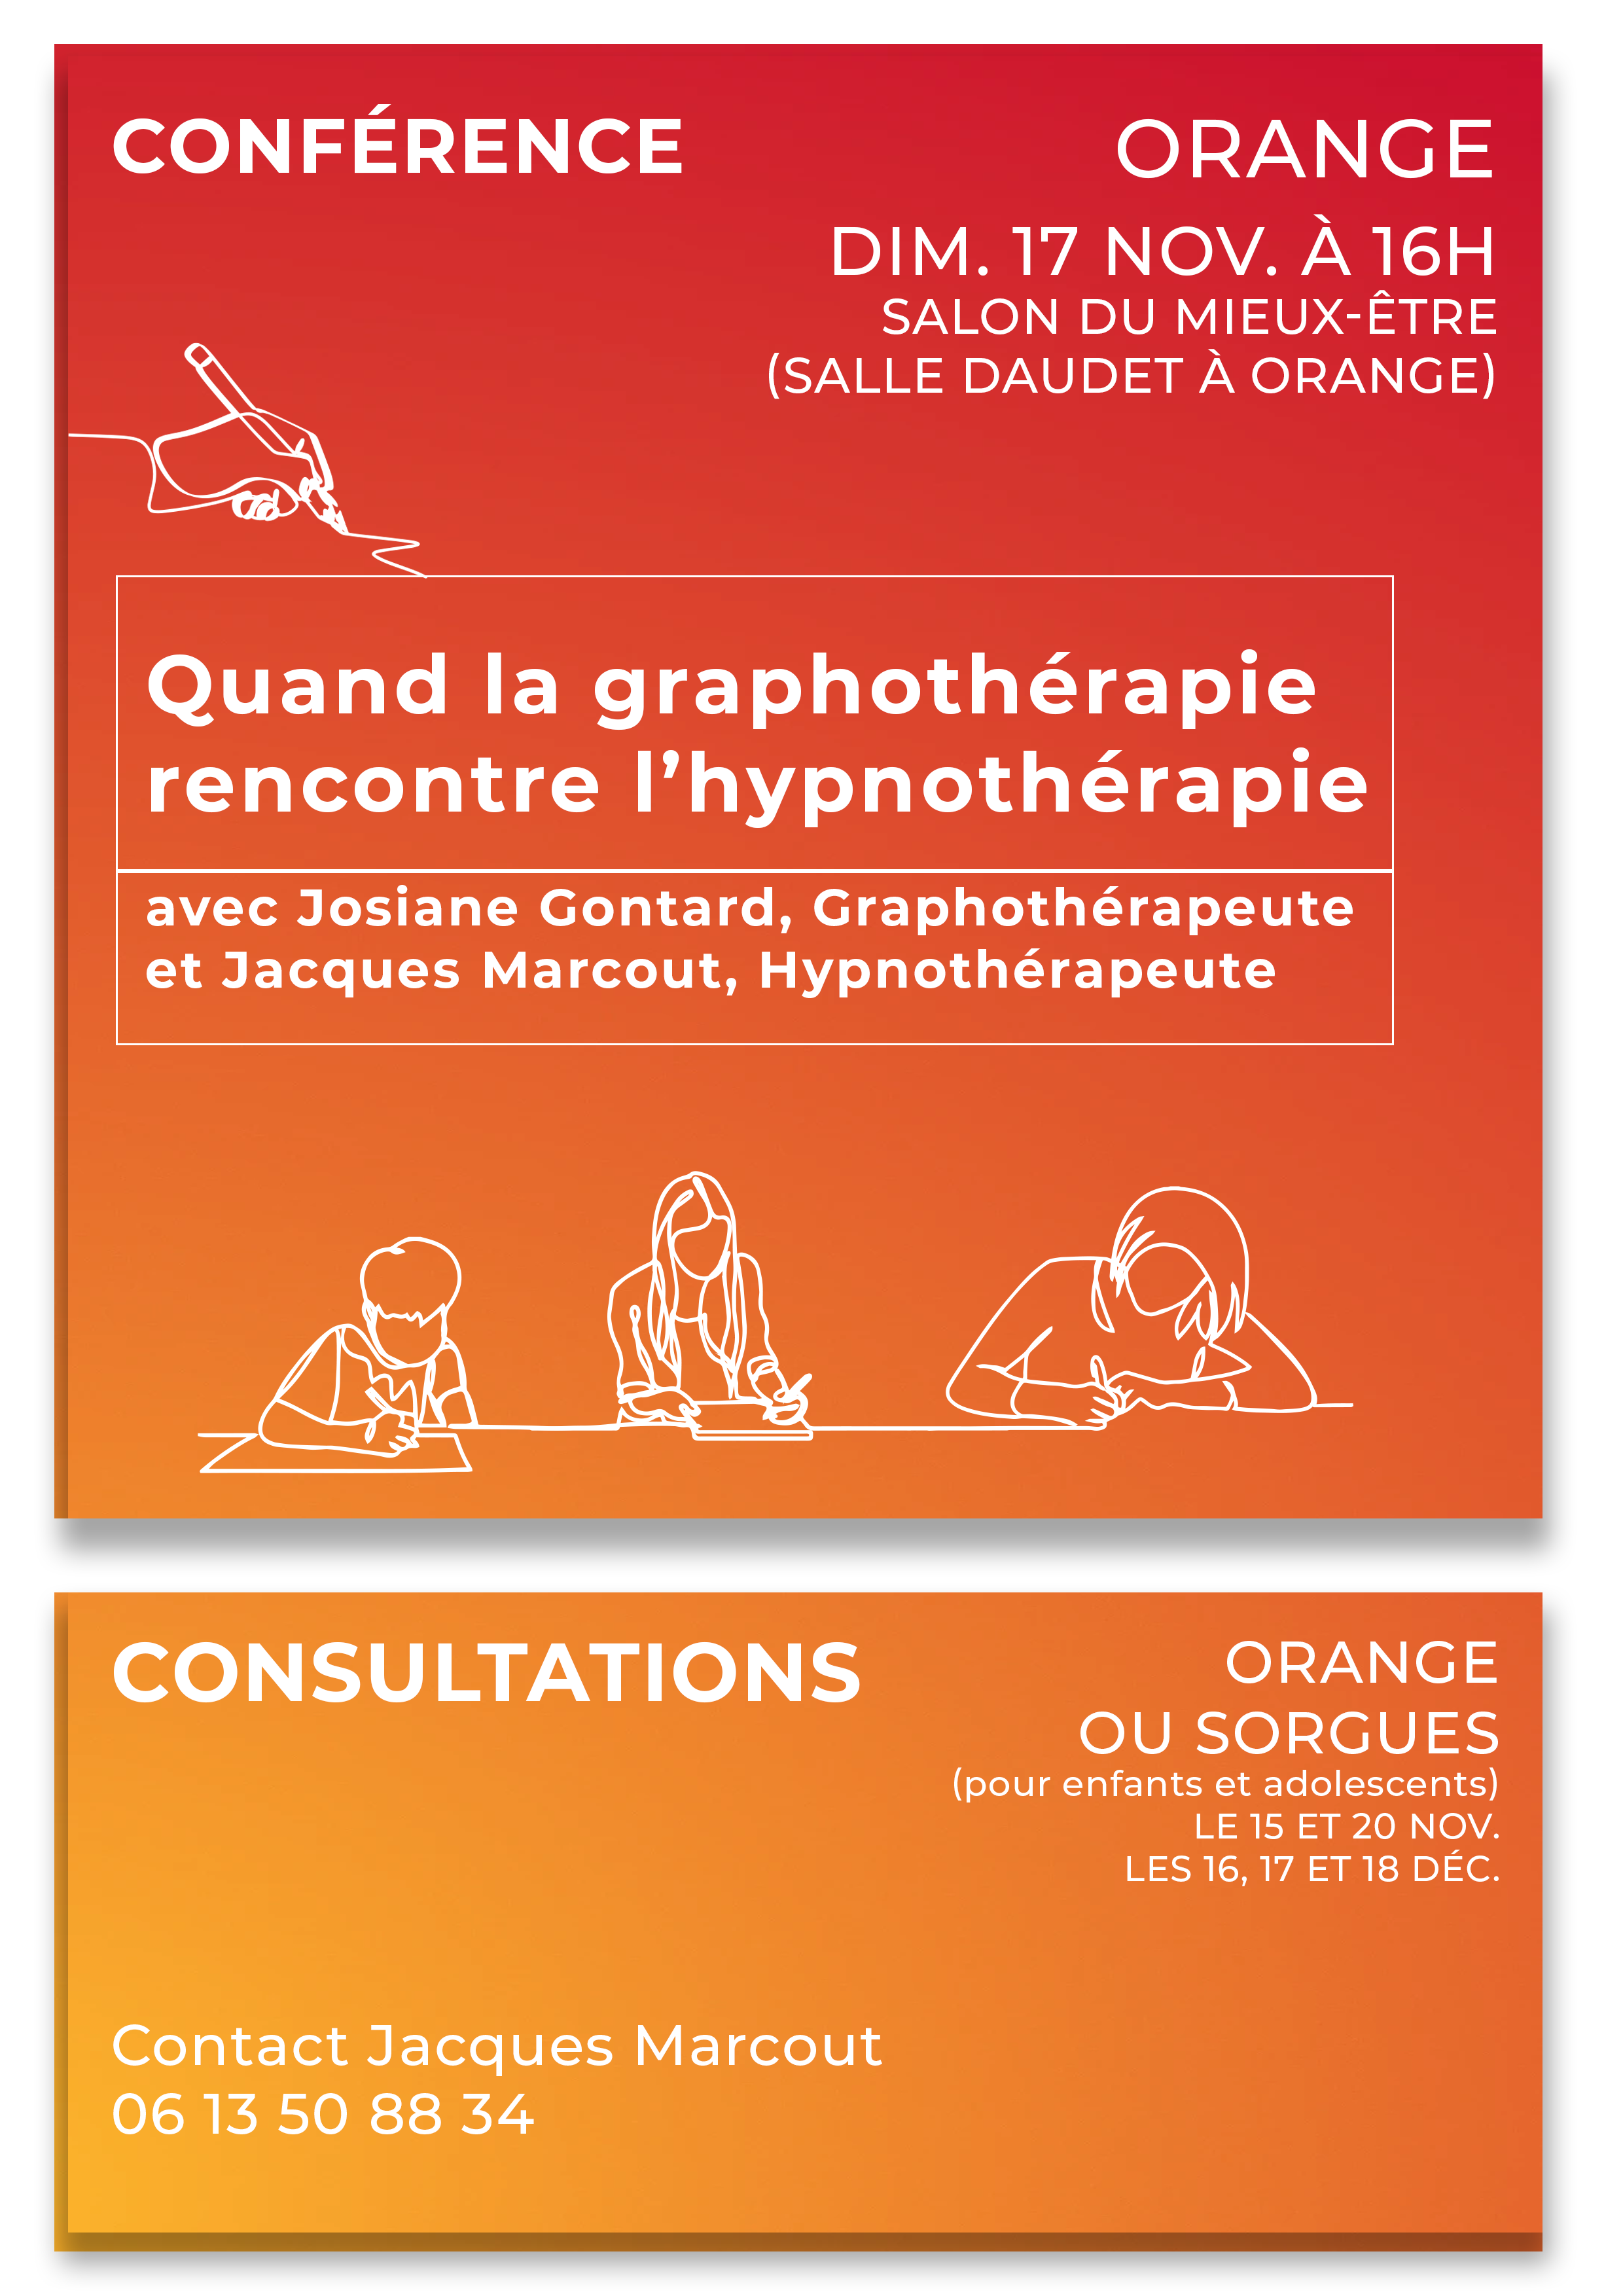 Conference et consultations Provence2